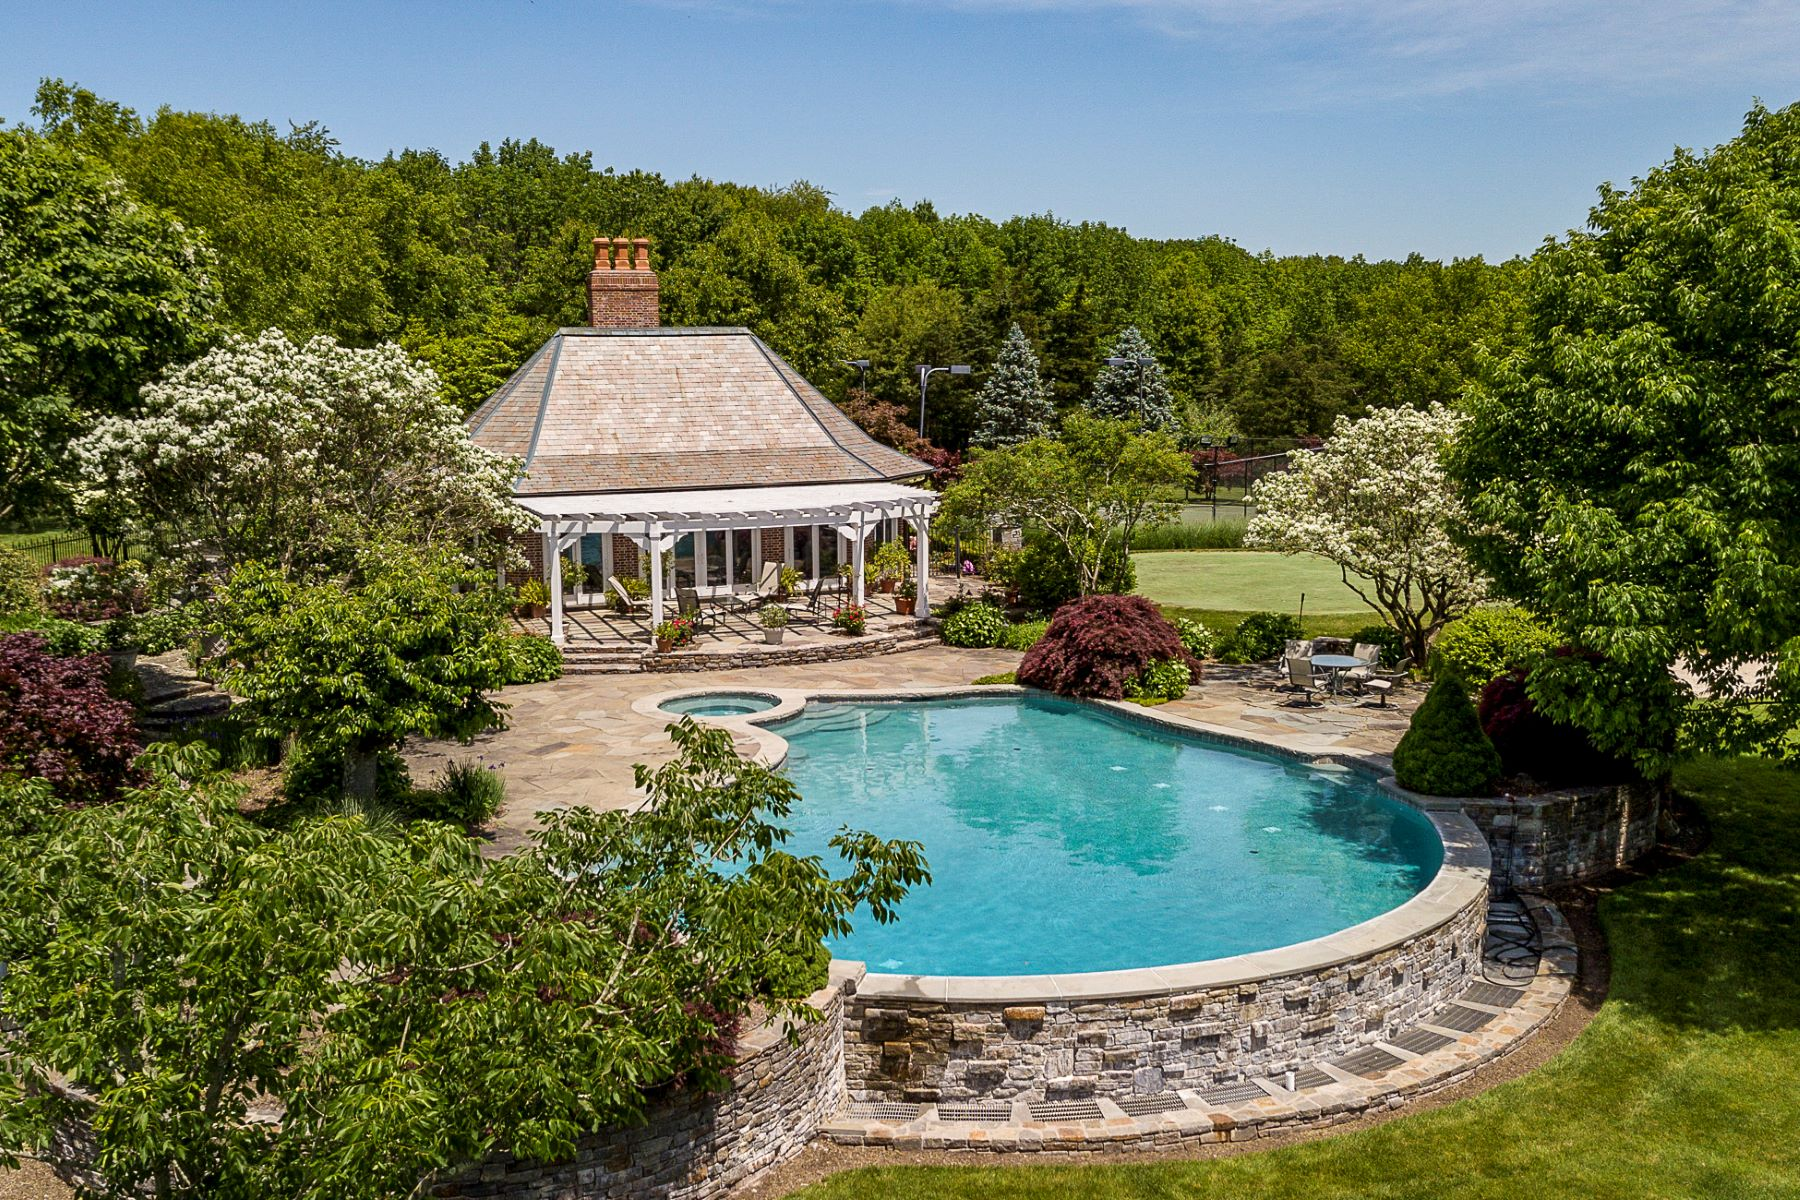 Additional photo for property listing at Private Compound with Every Amenity Imaginable 82 Aunt Molly Road, Hopewell, New Jersey 08525 États-Unis